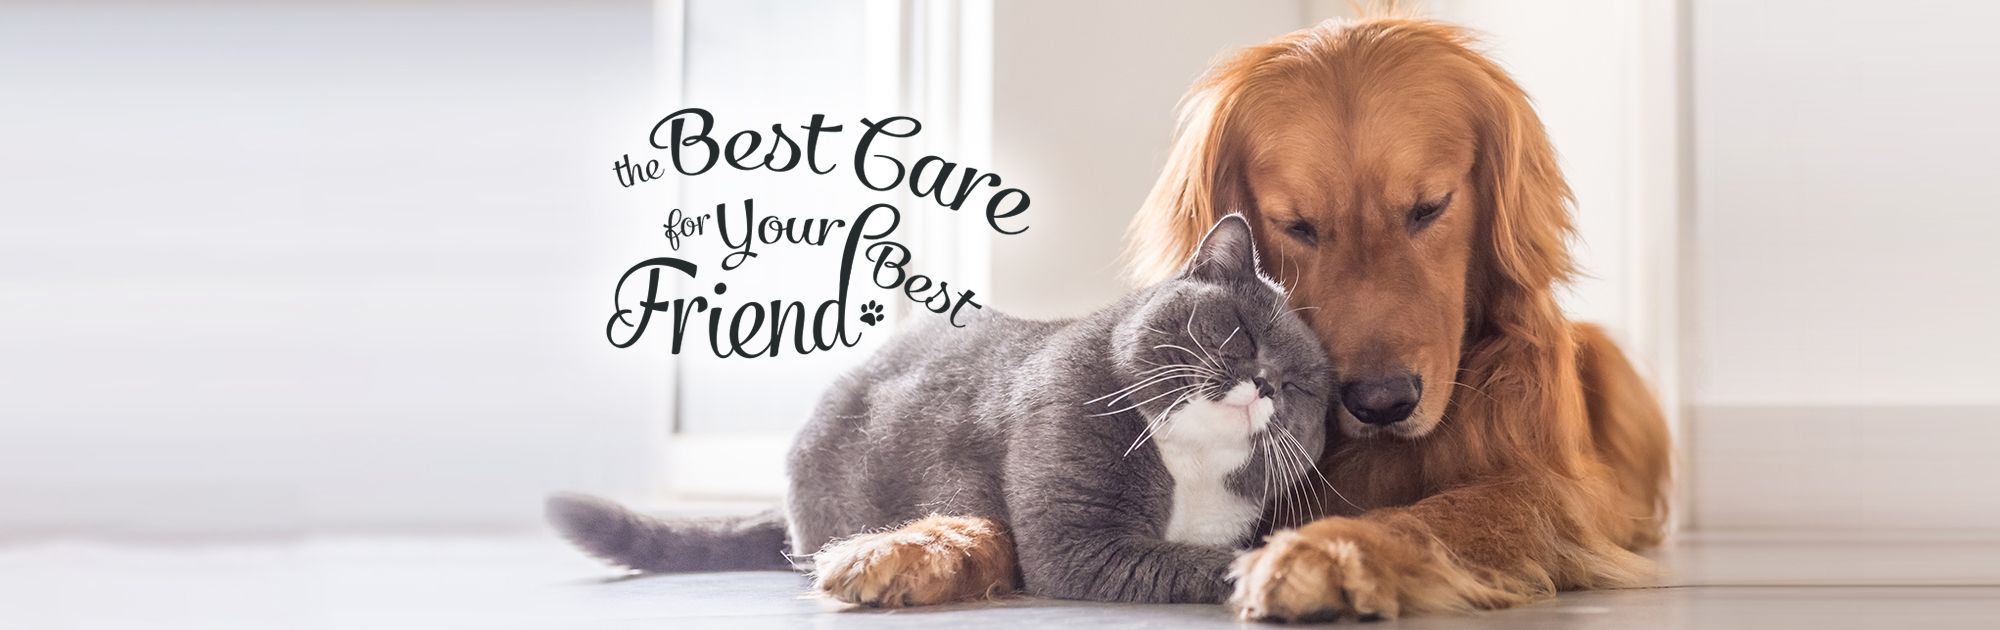 The best care for your best friend